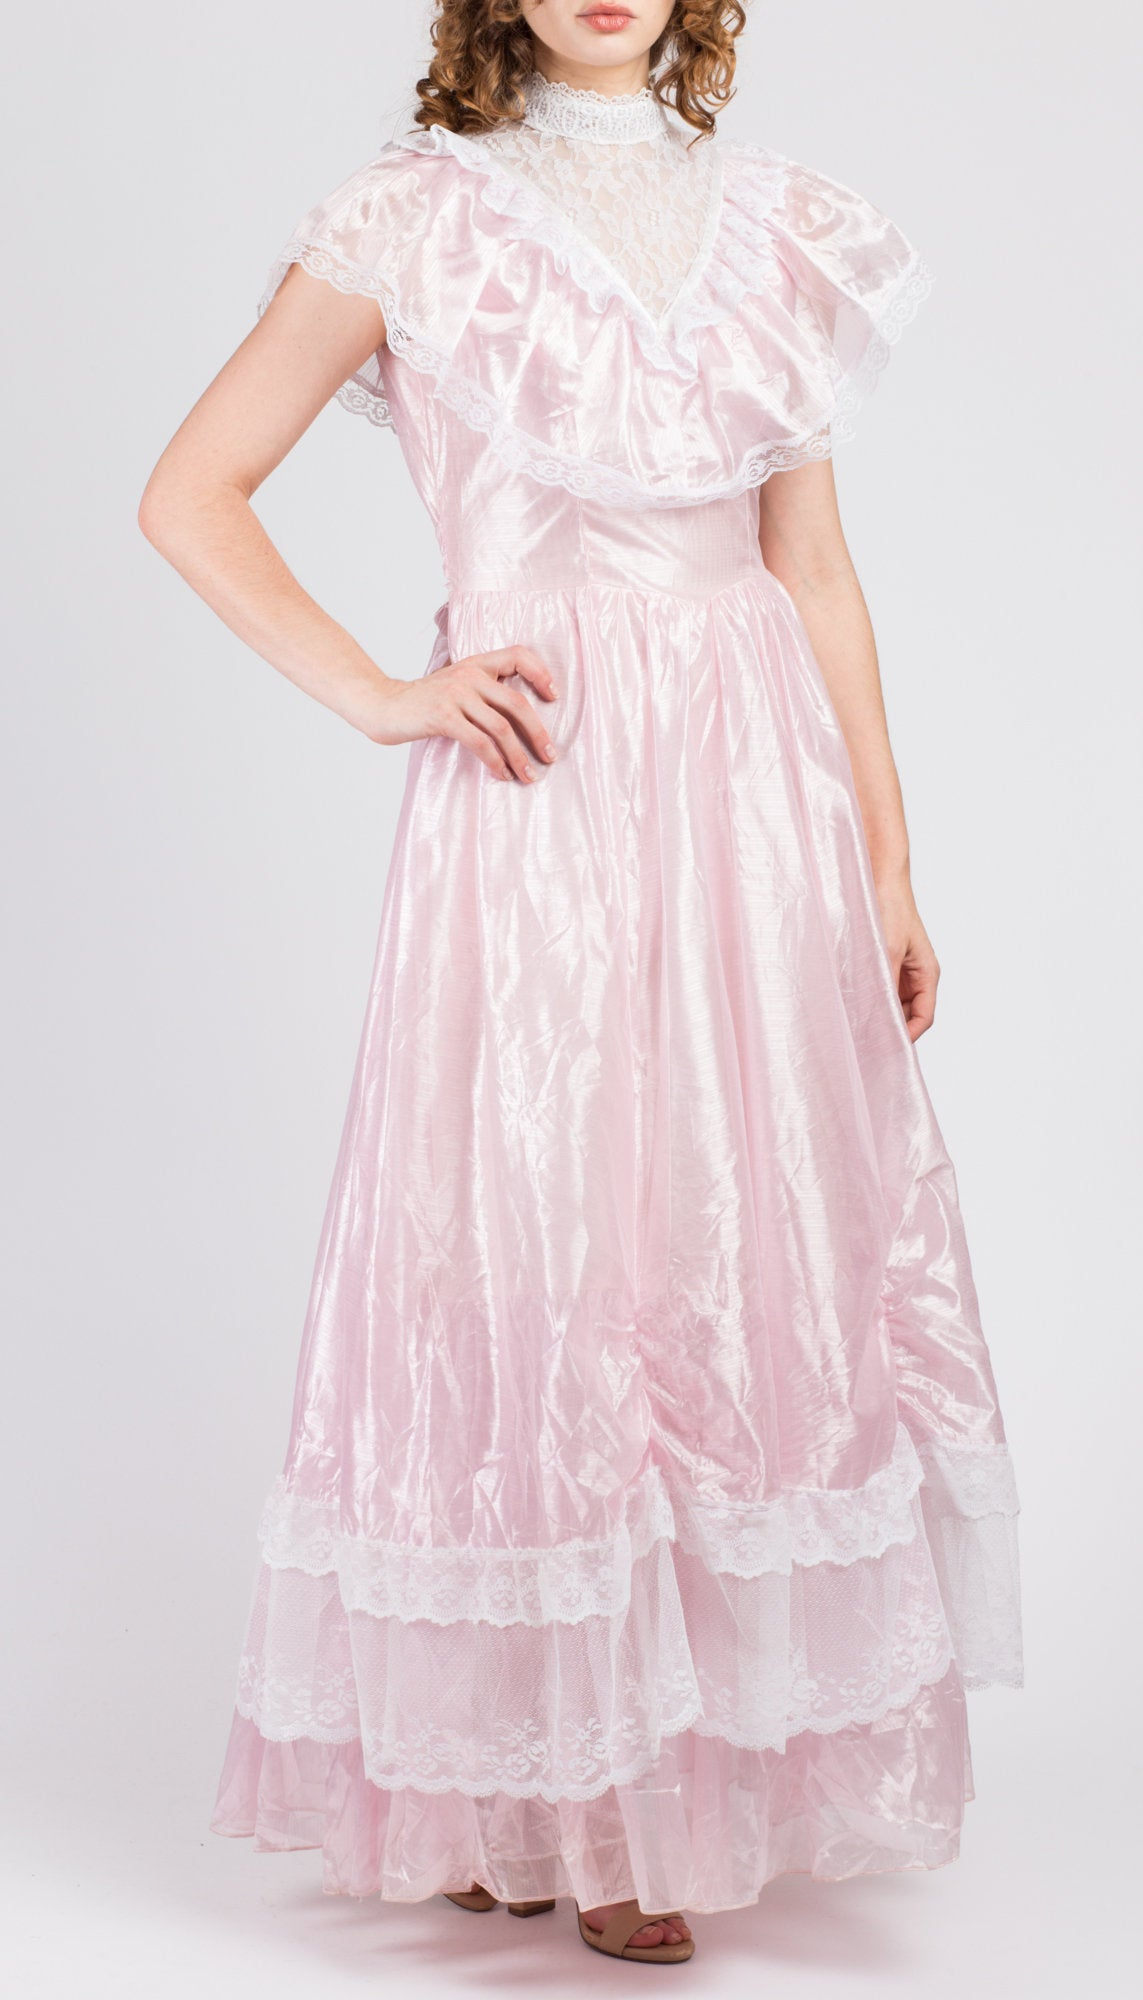 70s Precious Moments Pink Lace Princess Gown Medium Vintage Tiered Ruffle Formal Victorian Maxi Floor Length Dress